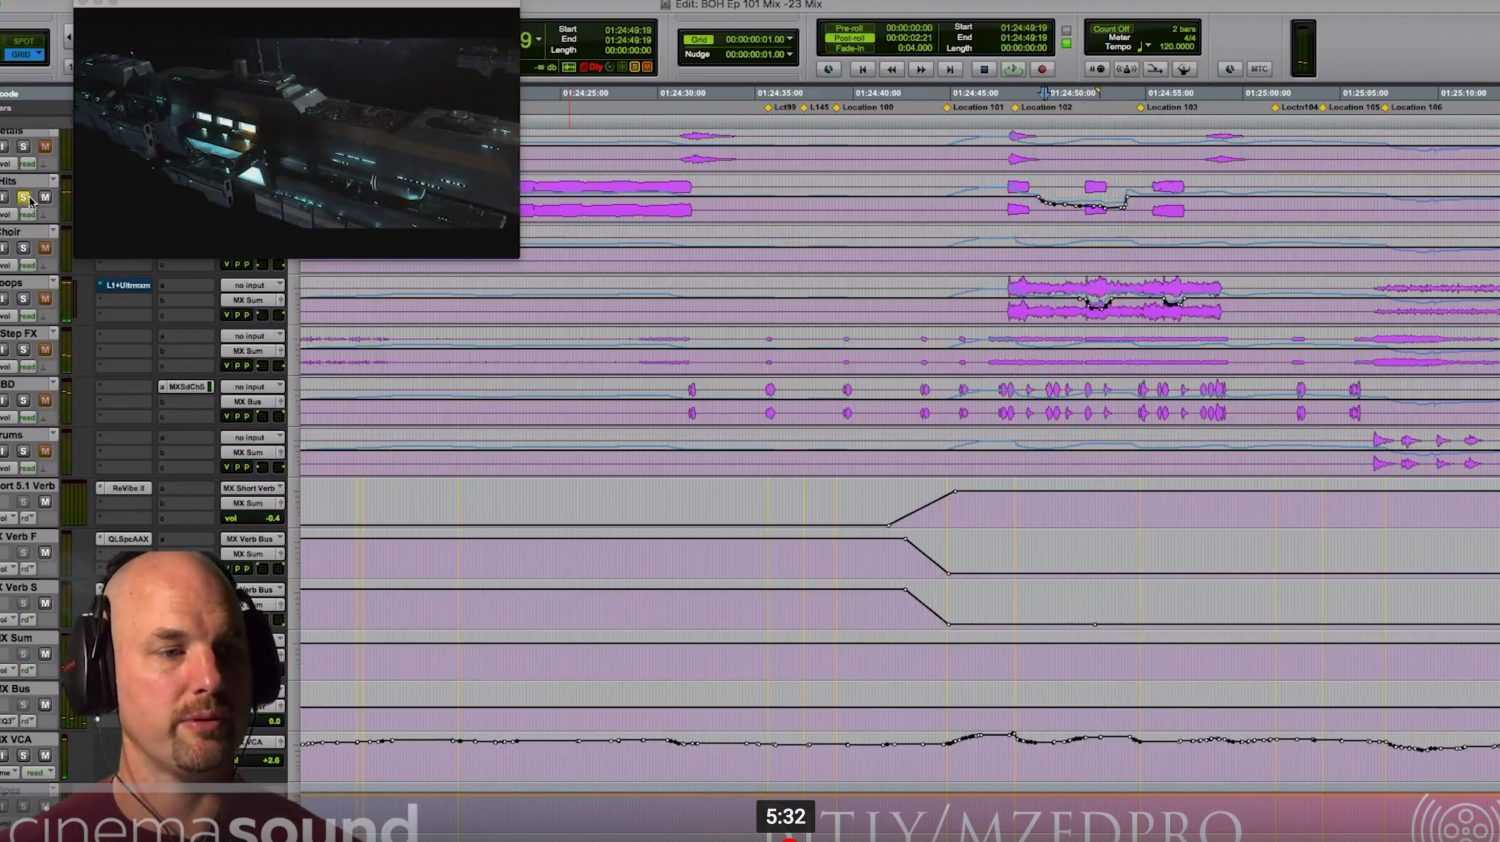 Music Mixing for Picture from 256 Channel Mix of Blade of Honor